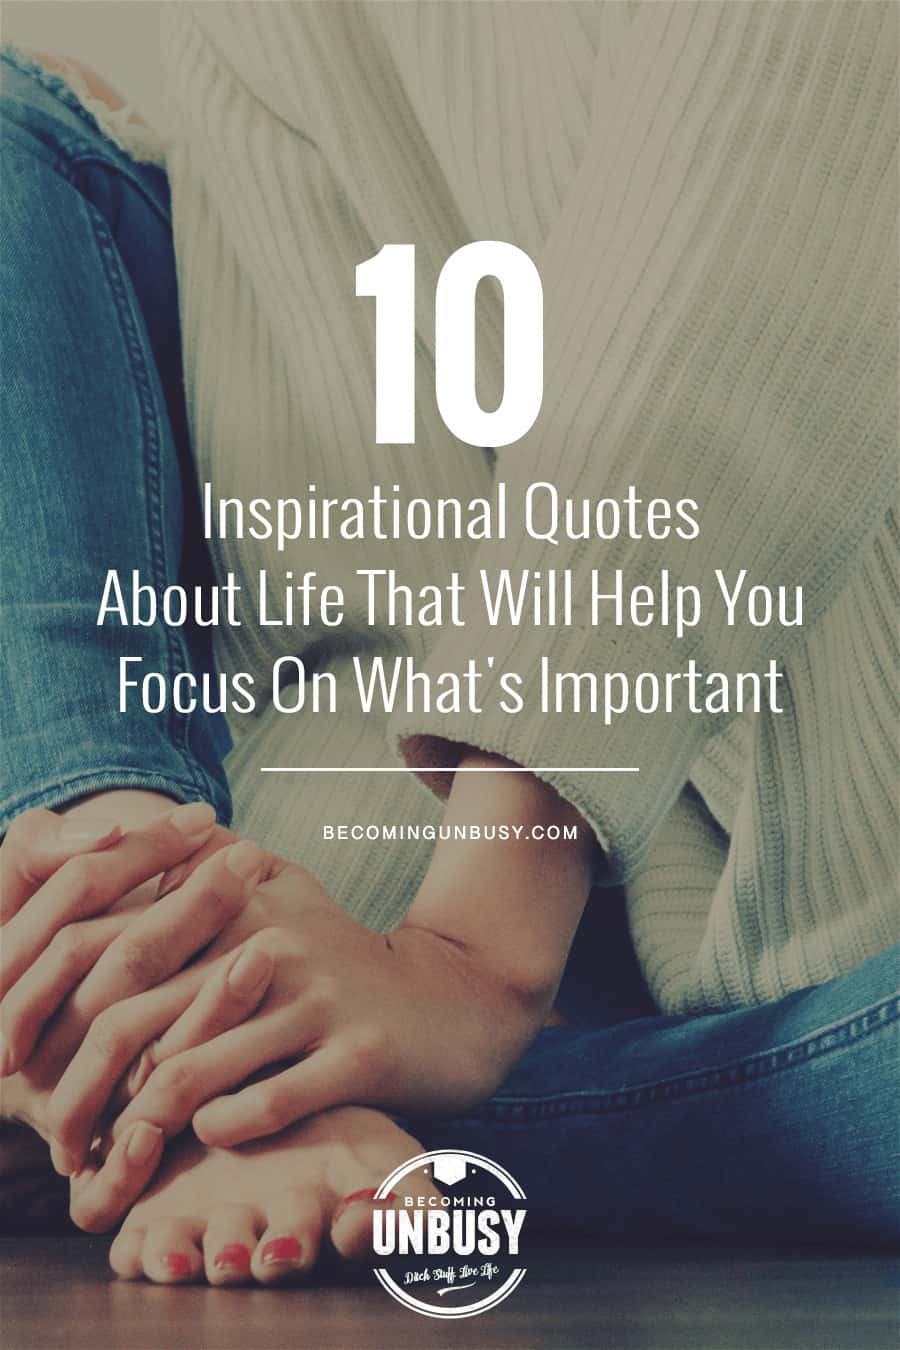 10 inspirational quotes about life that will help you focus on what's important #quotes #lifequotes #inspirationalquotes *Loving this collection of life quotes!